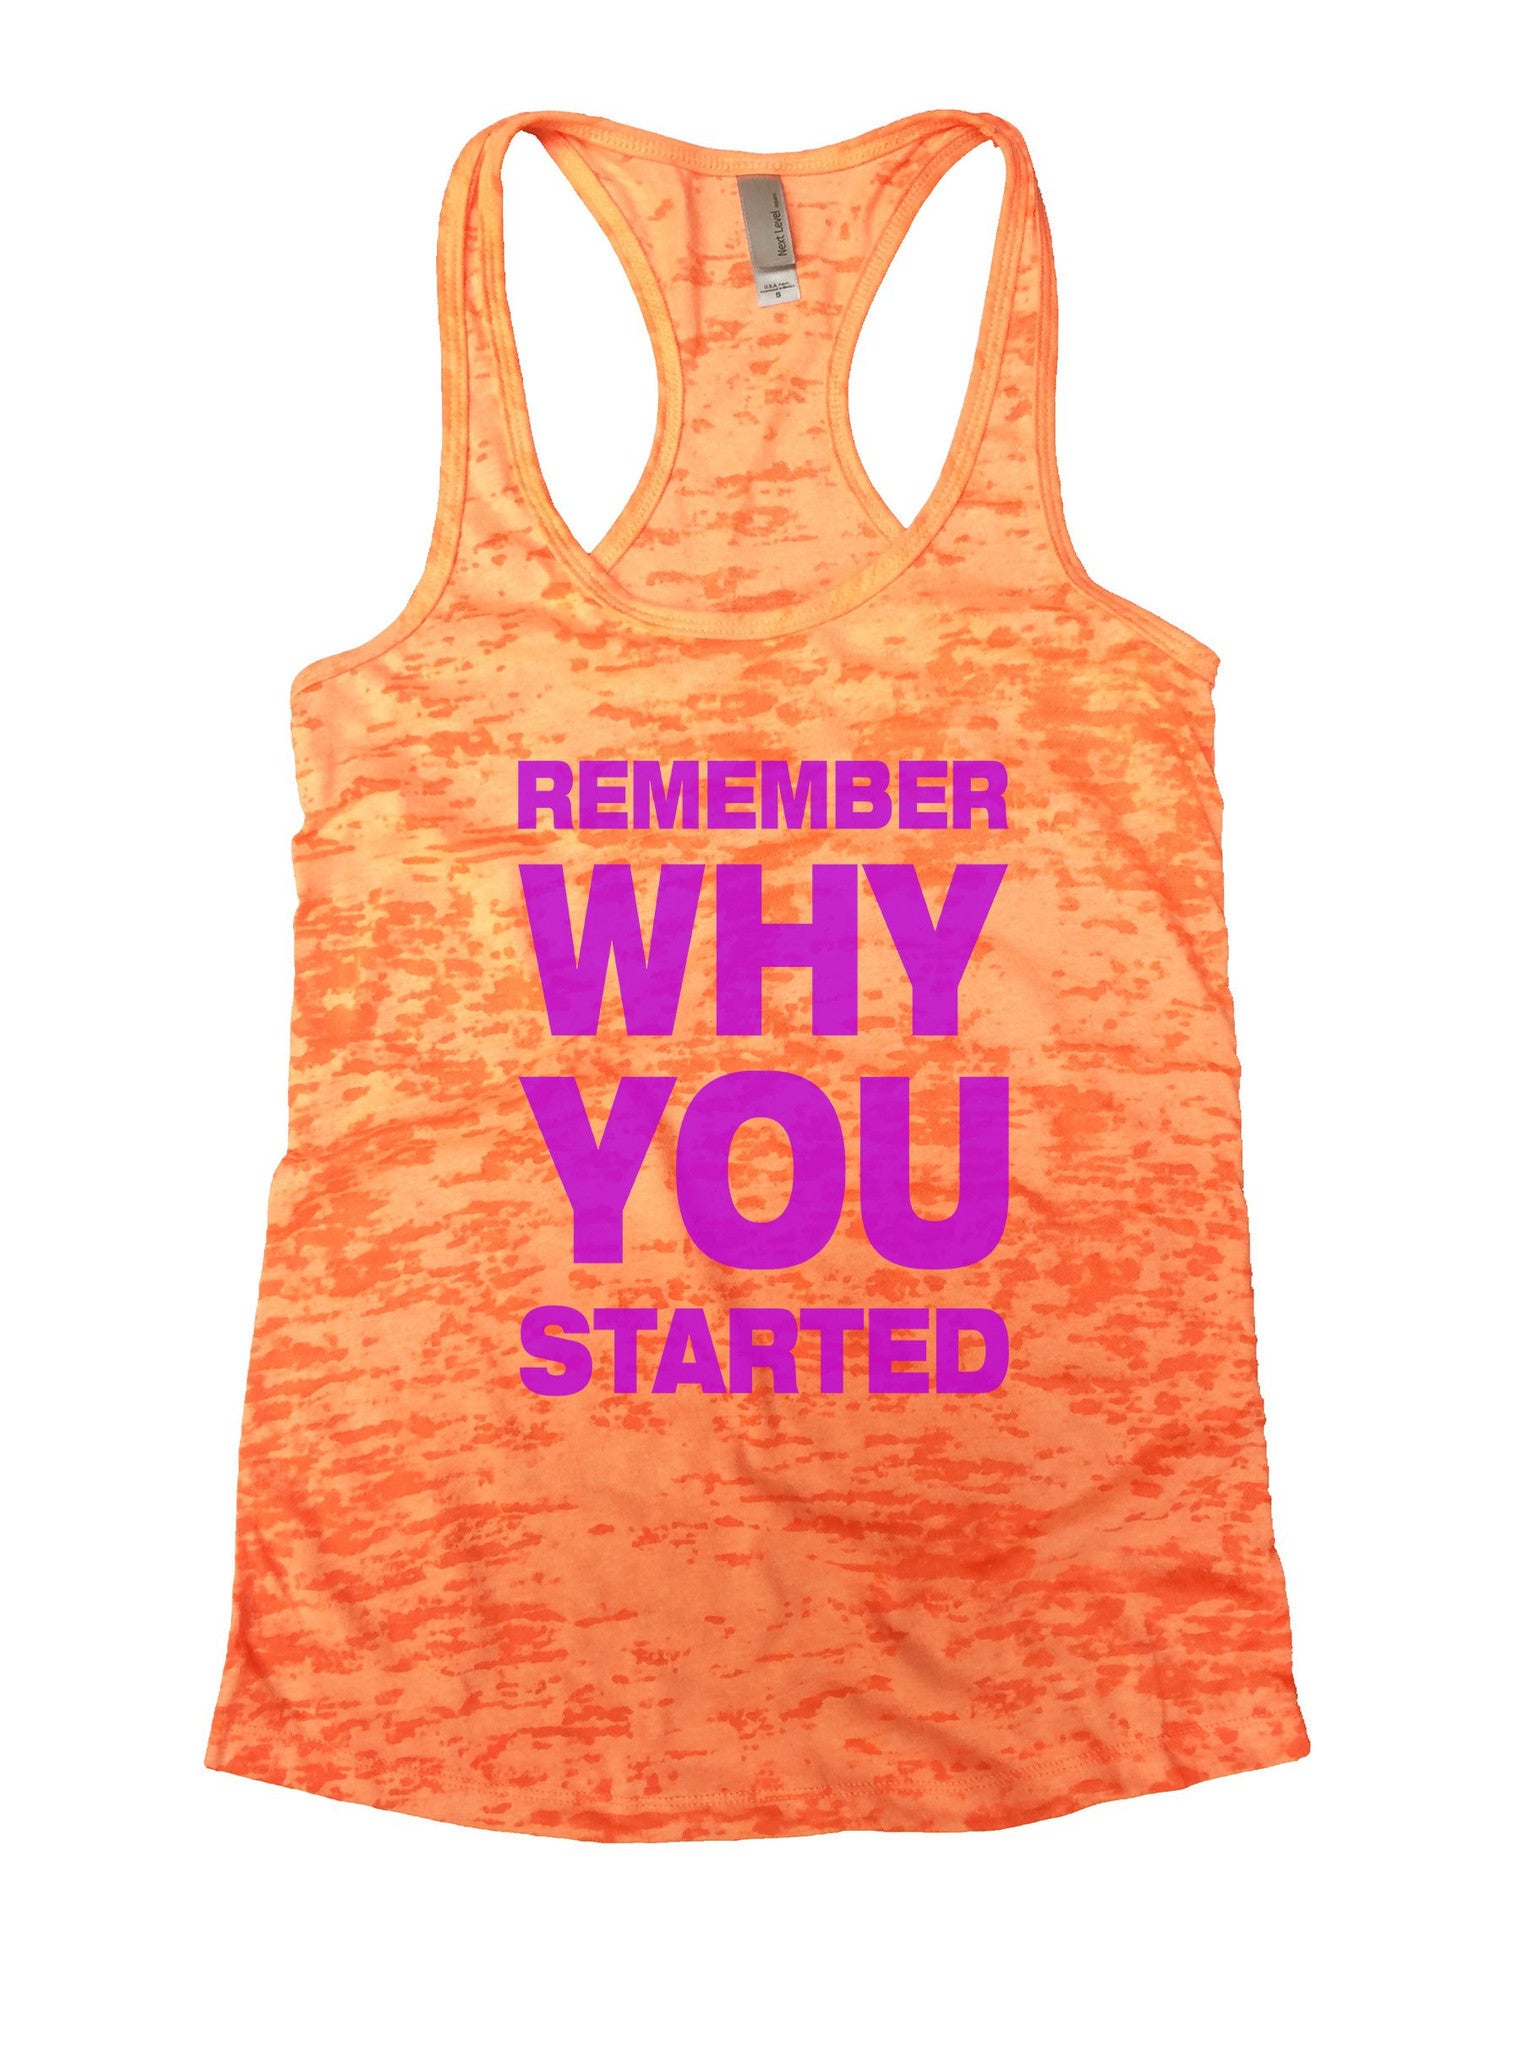 Remember Why You Started Burnout Tank Top By BurnoutTankTops.com - 852 - Funny Shirts Tank Tops Burnouts and Triblends  - 3